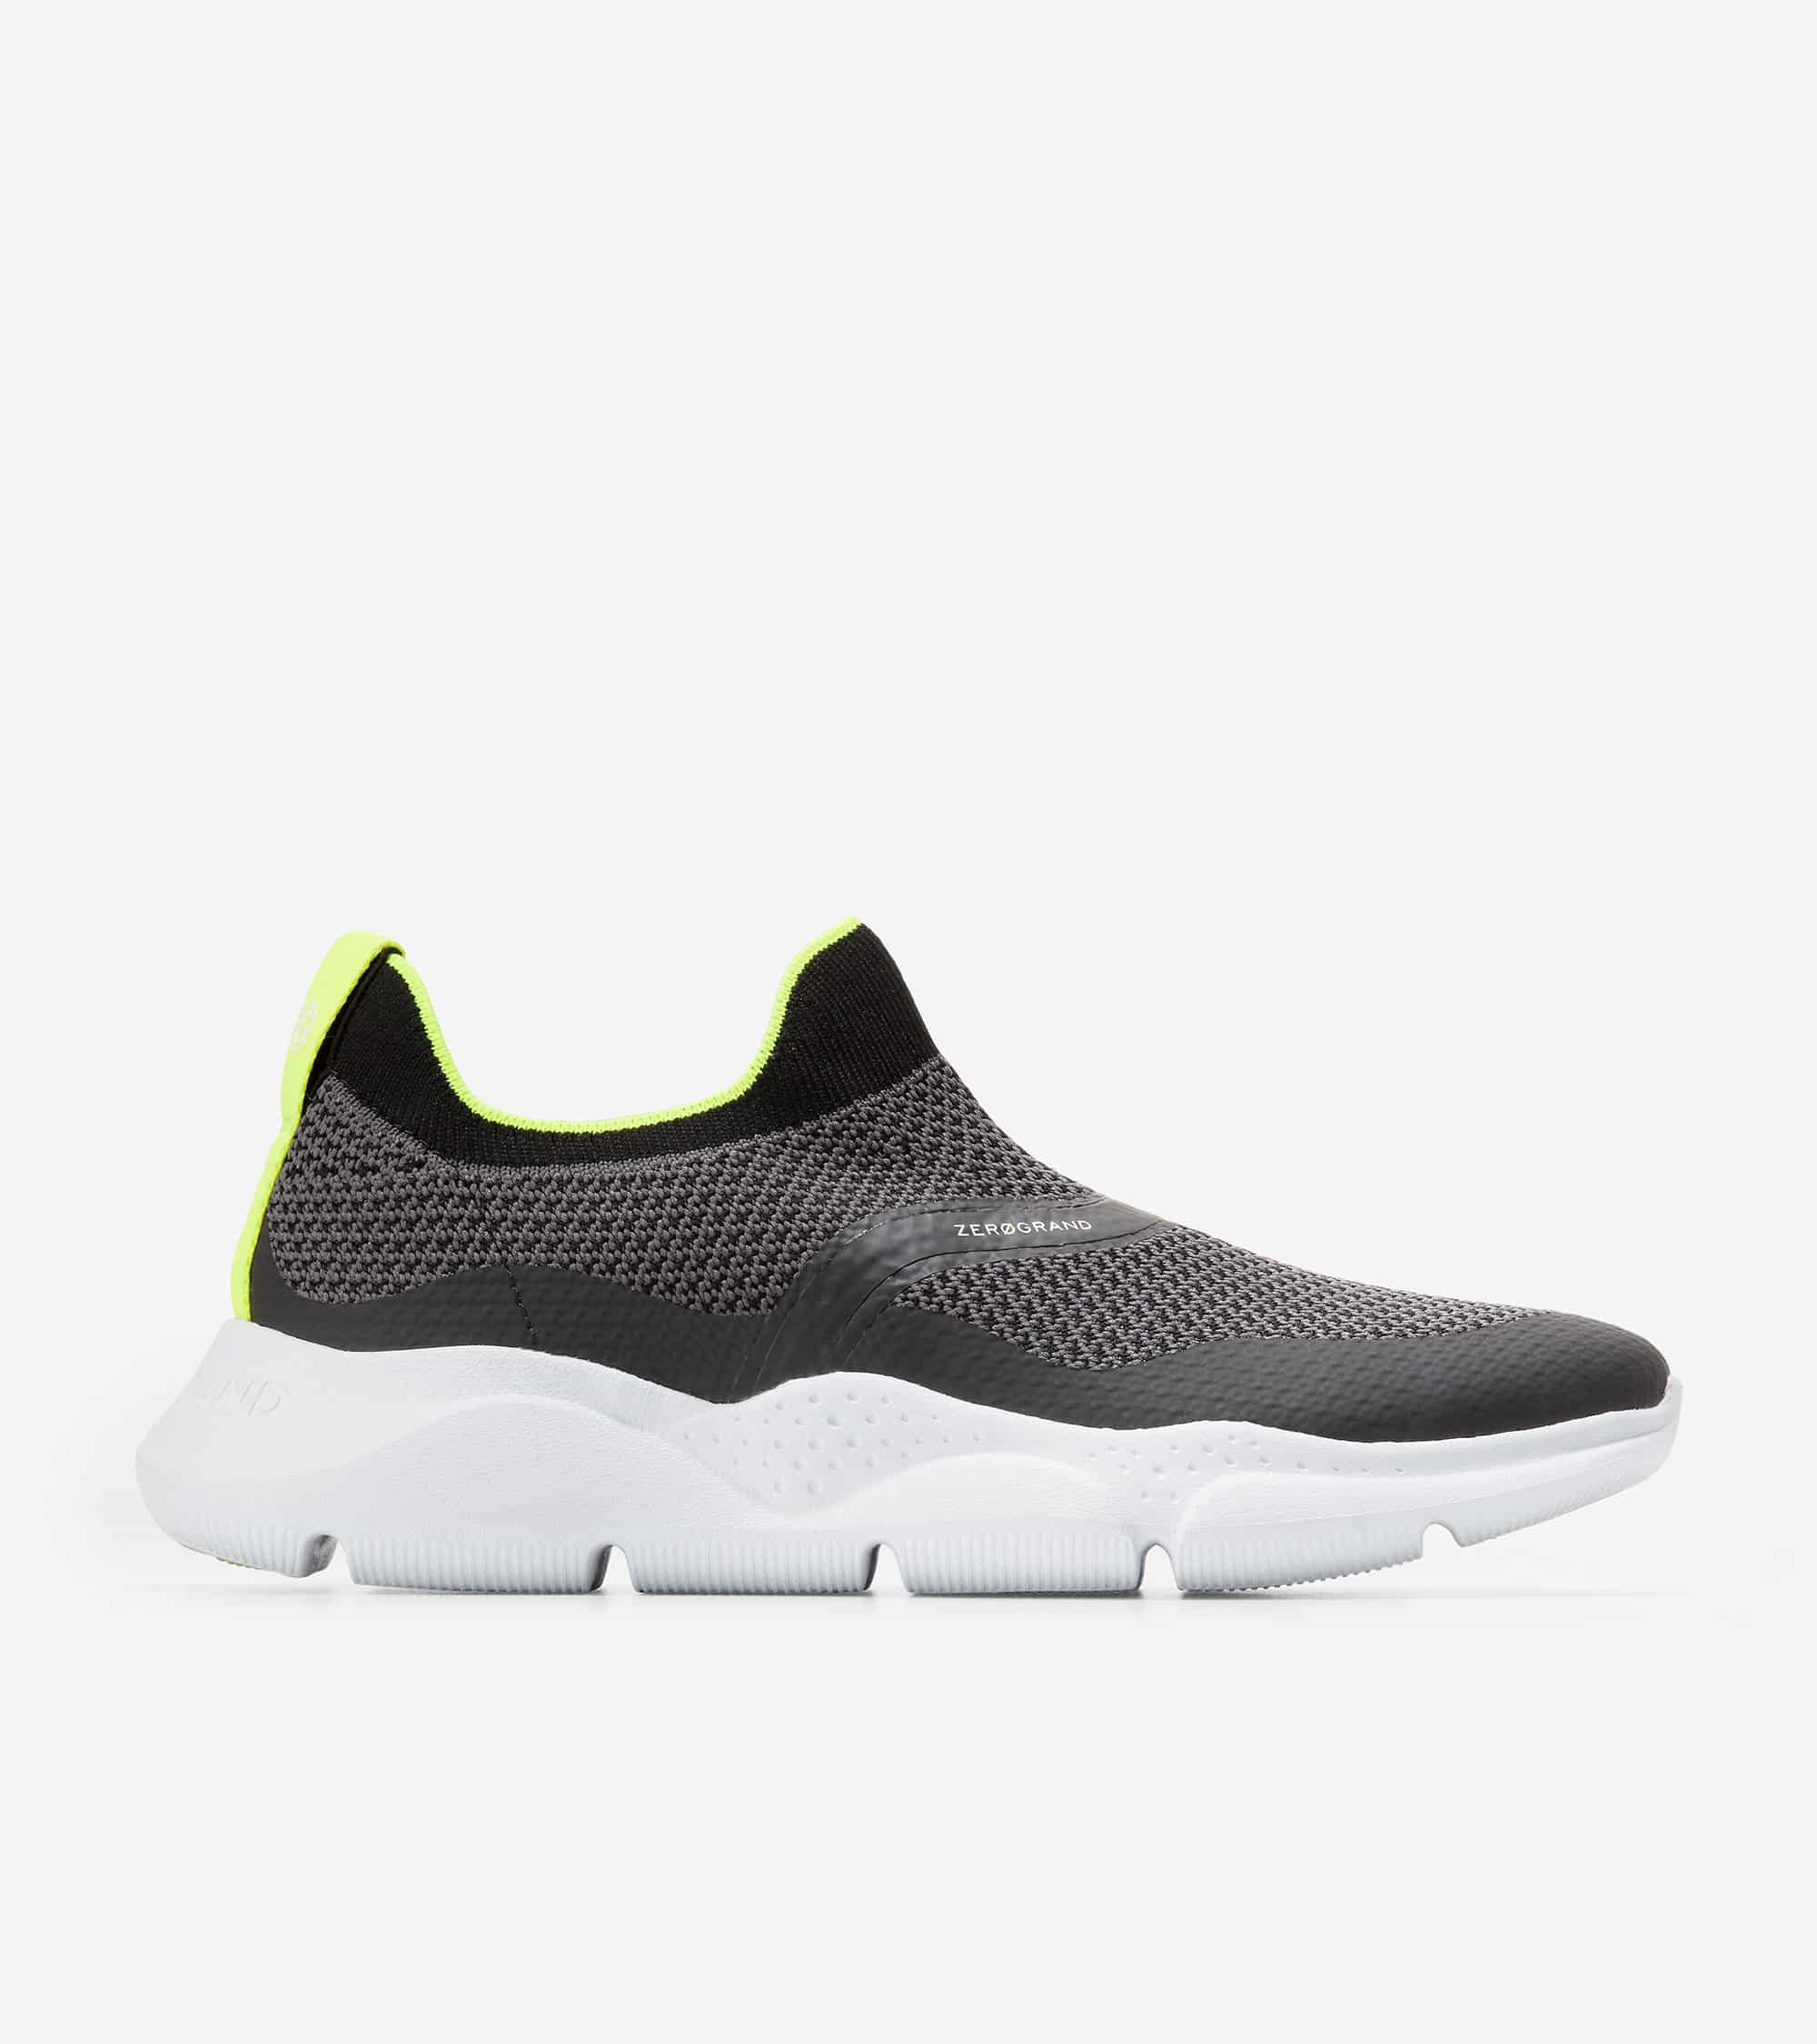 Cole Haan ZERØGRAND Radiant Slip On Sneaker Black Tpu/ Black & Periscope Knit/ Safety Yellow/ Optic White